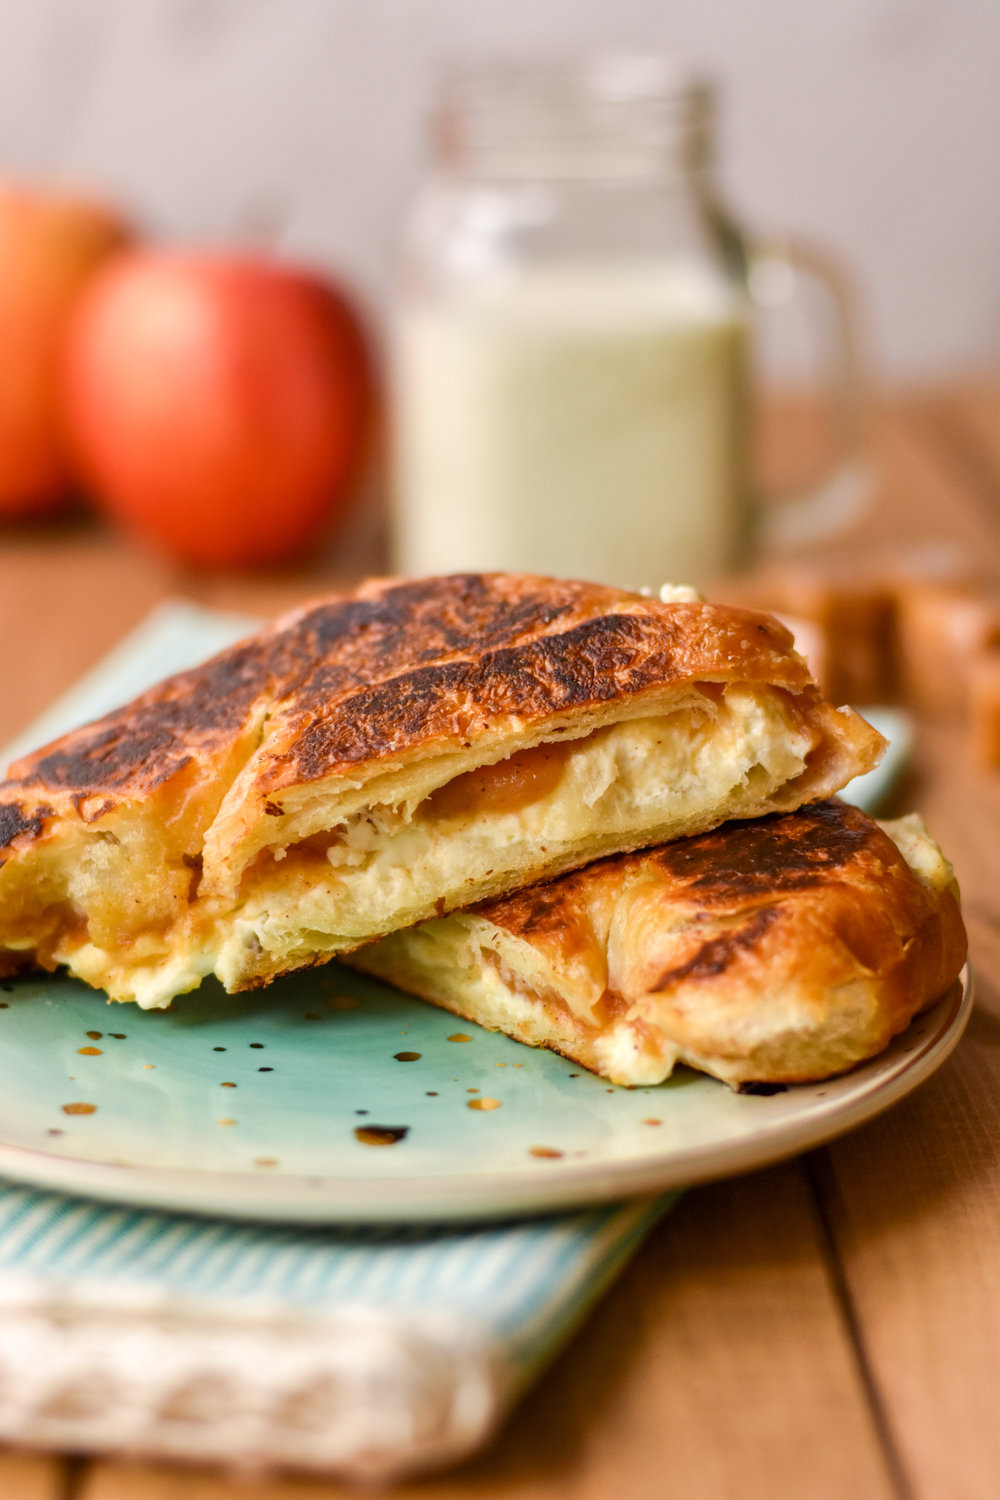 caramel apple grilled cheese sandwich recipe